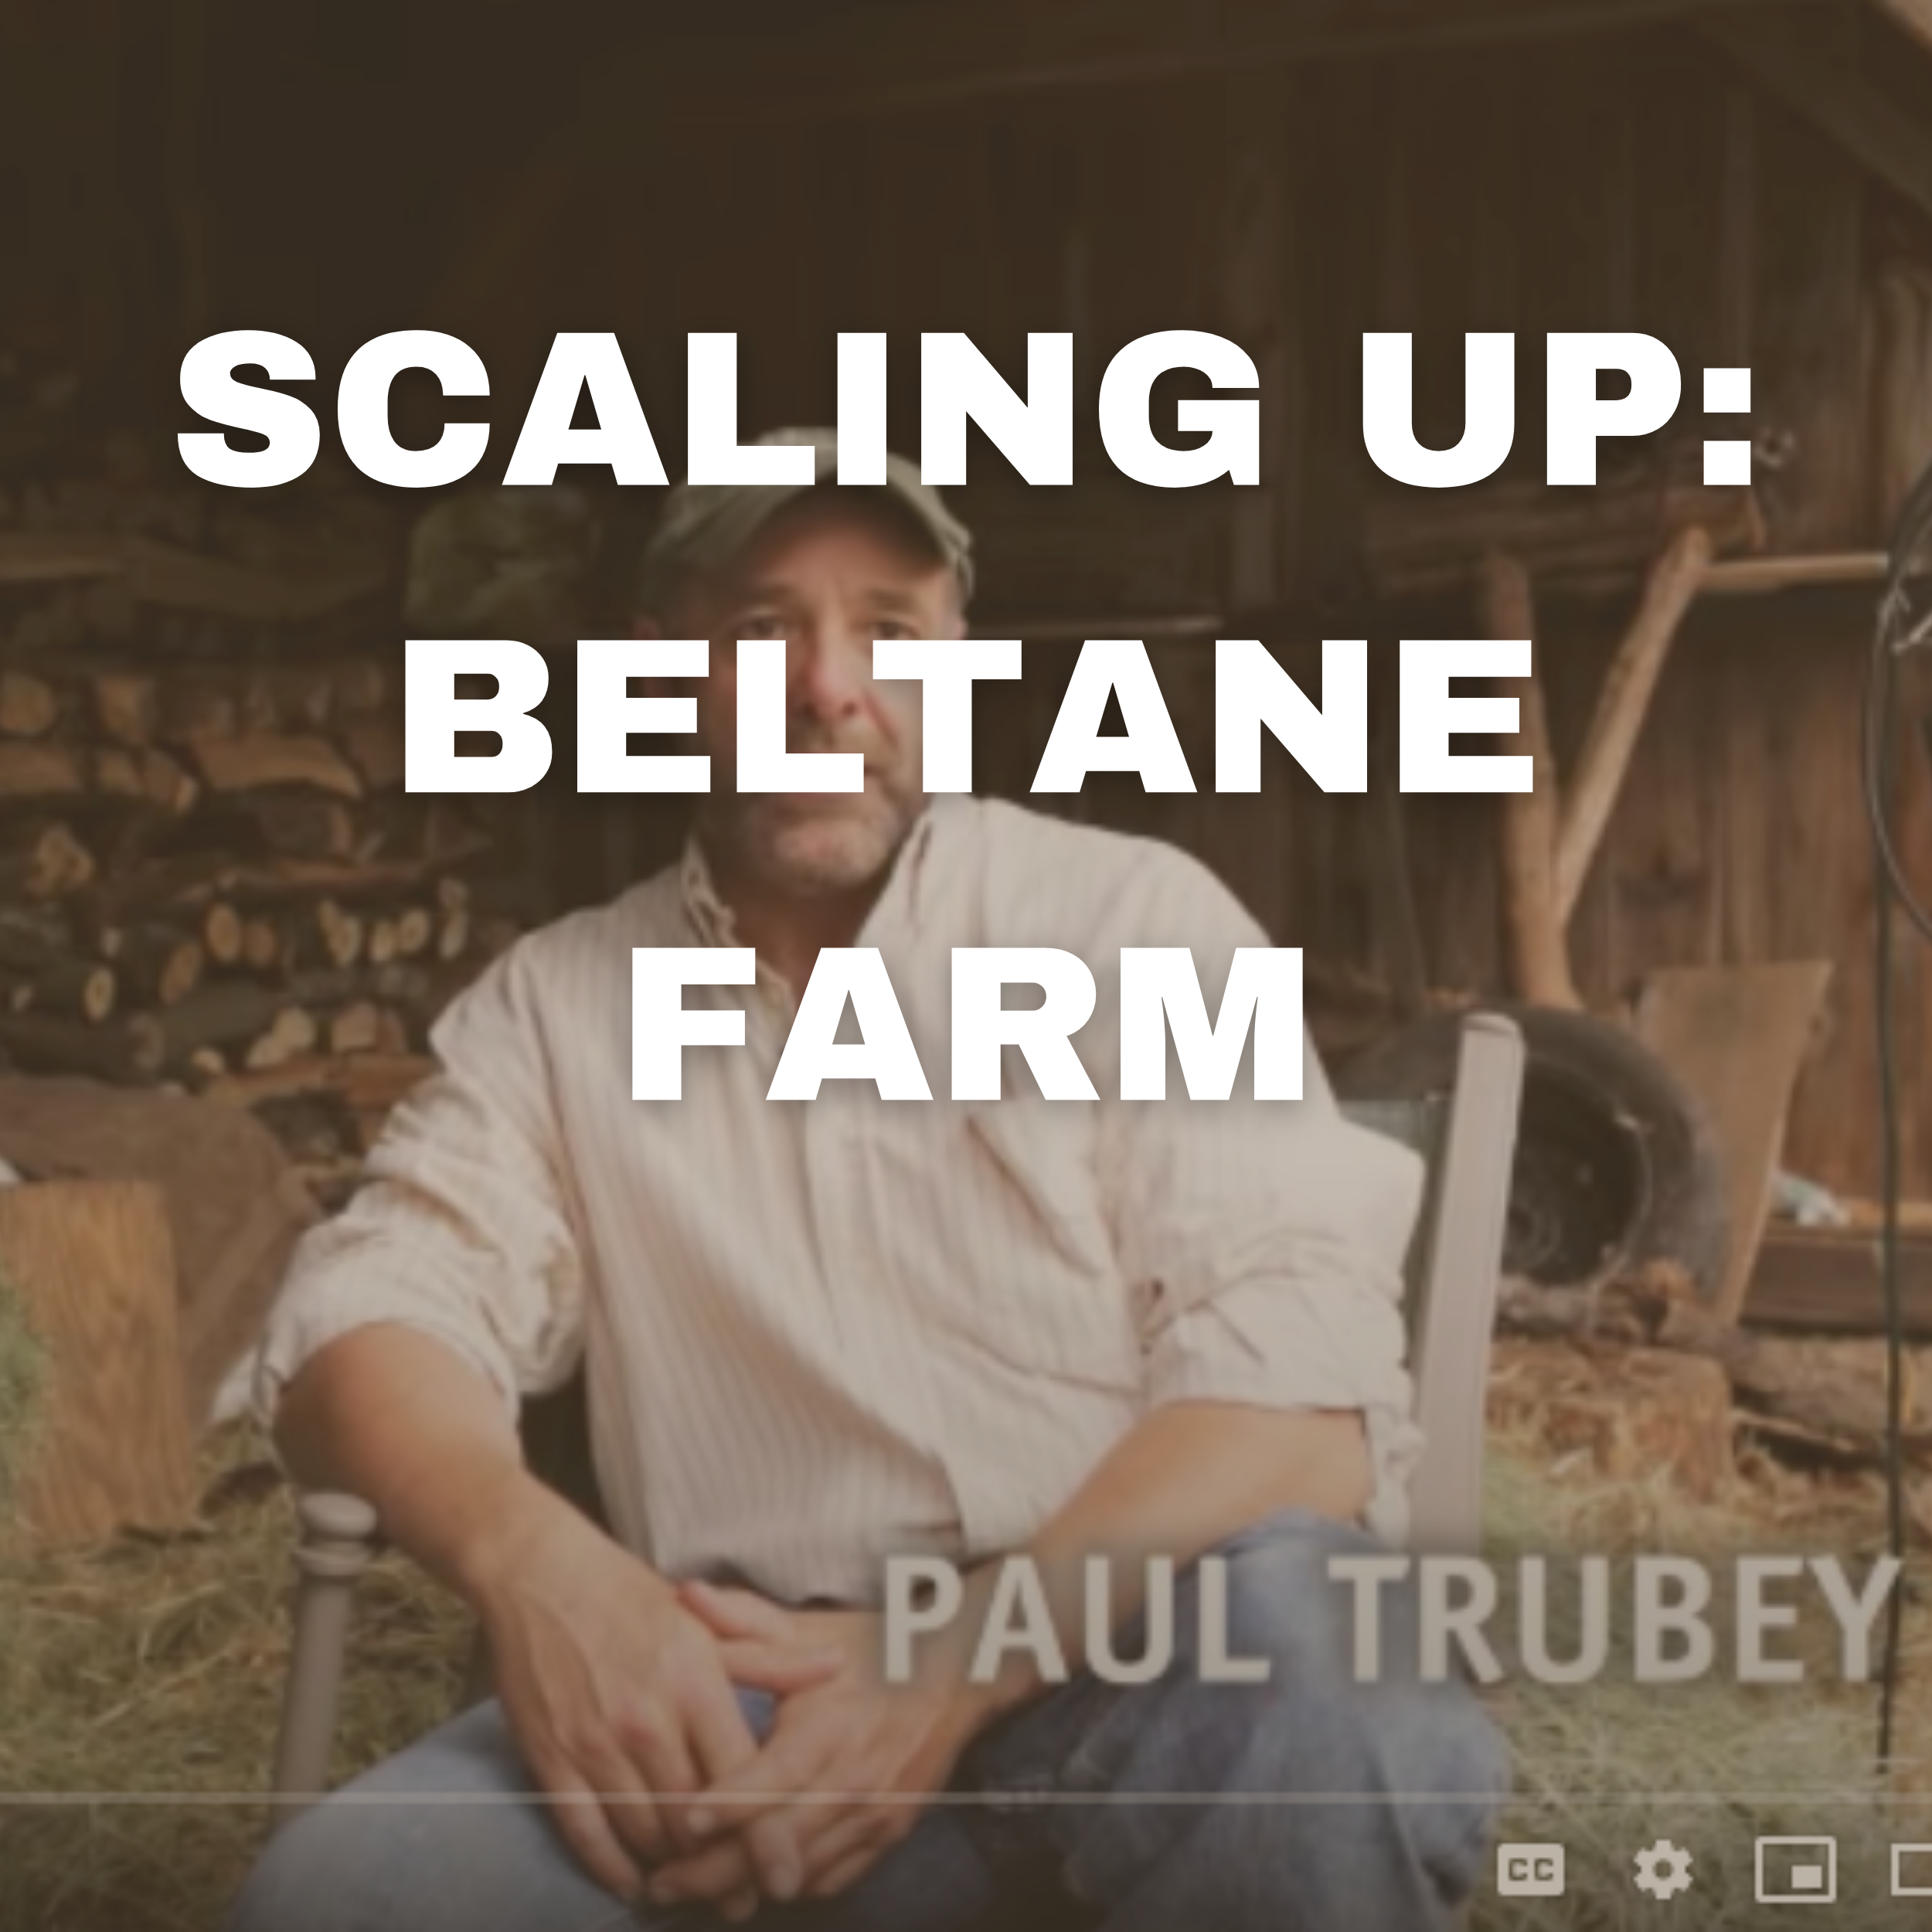 SCALING UP: BELTANE FARM